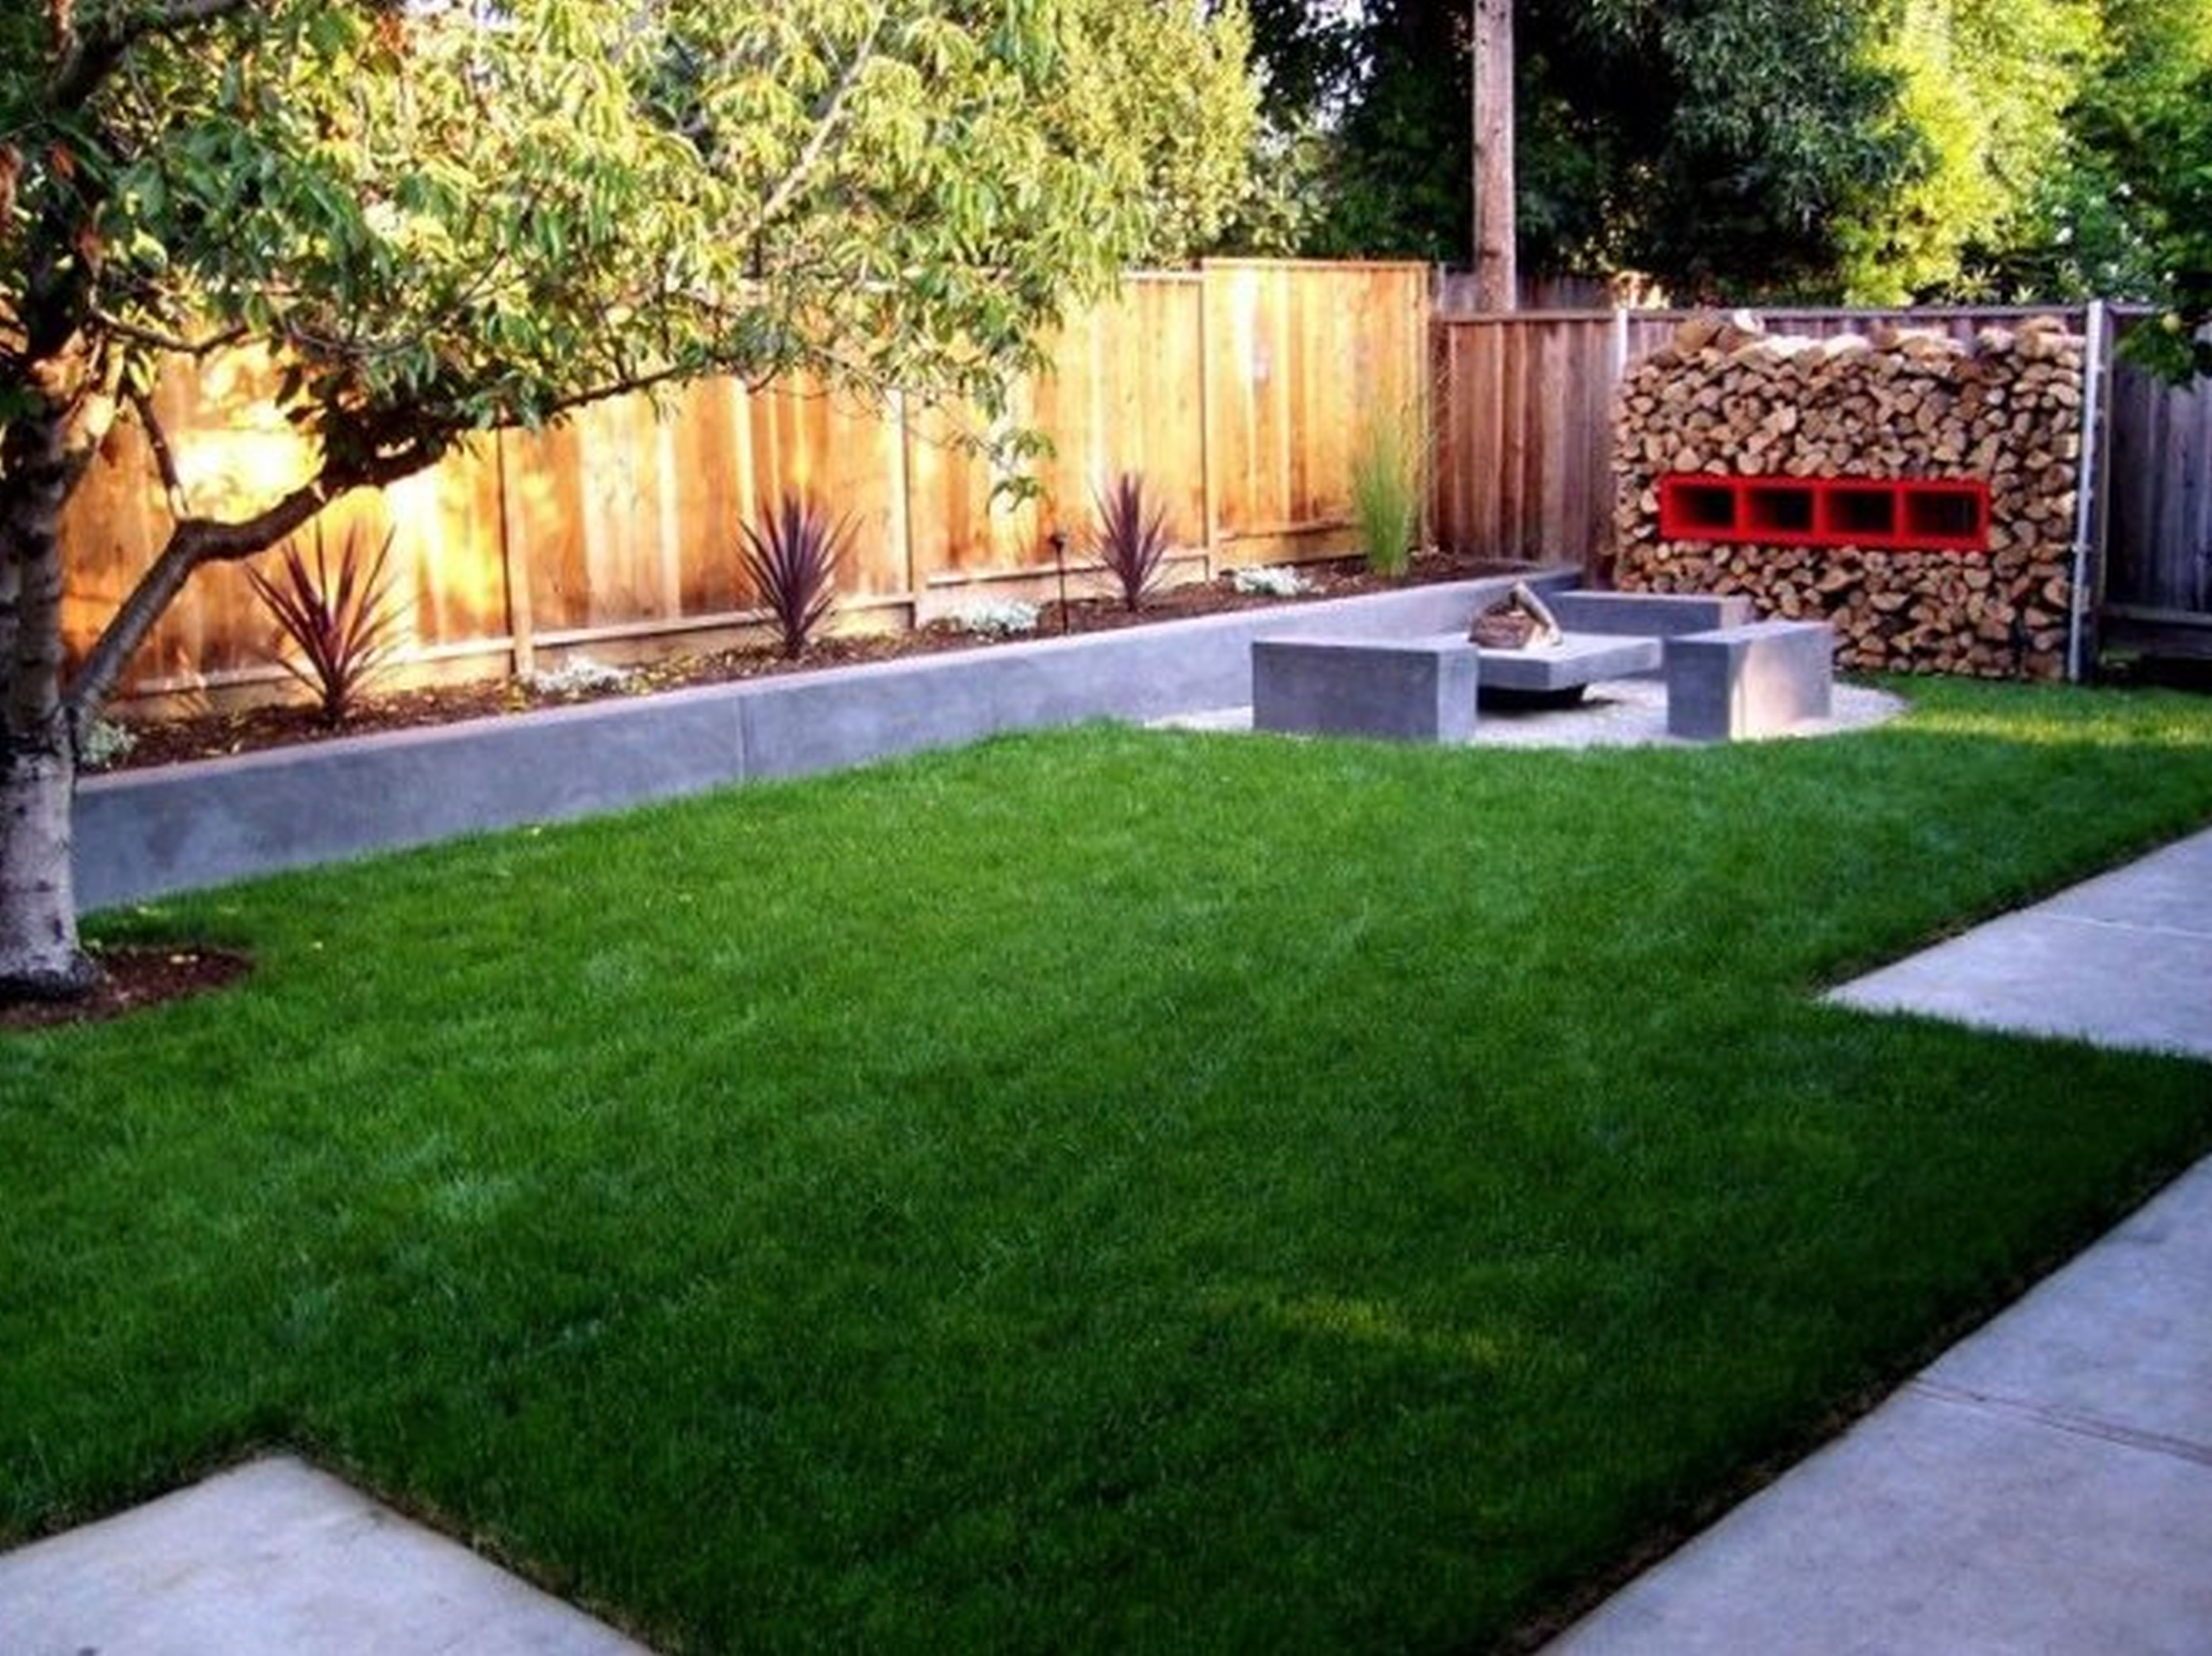 4 backyard garden ideas you have to try immediately for Yard landscaping ideas